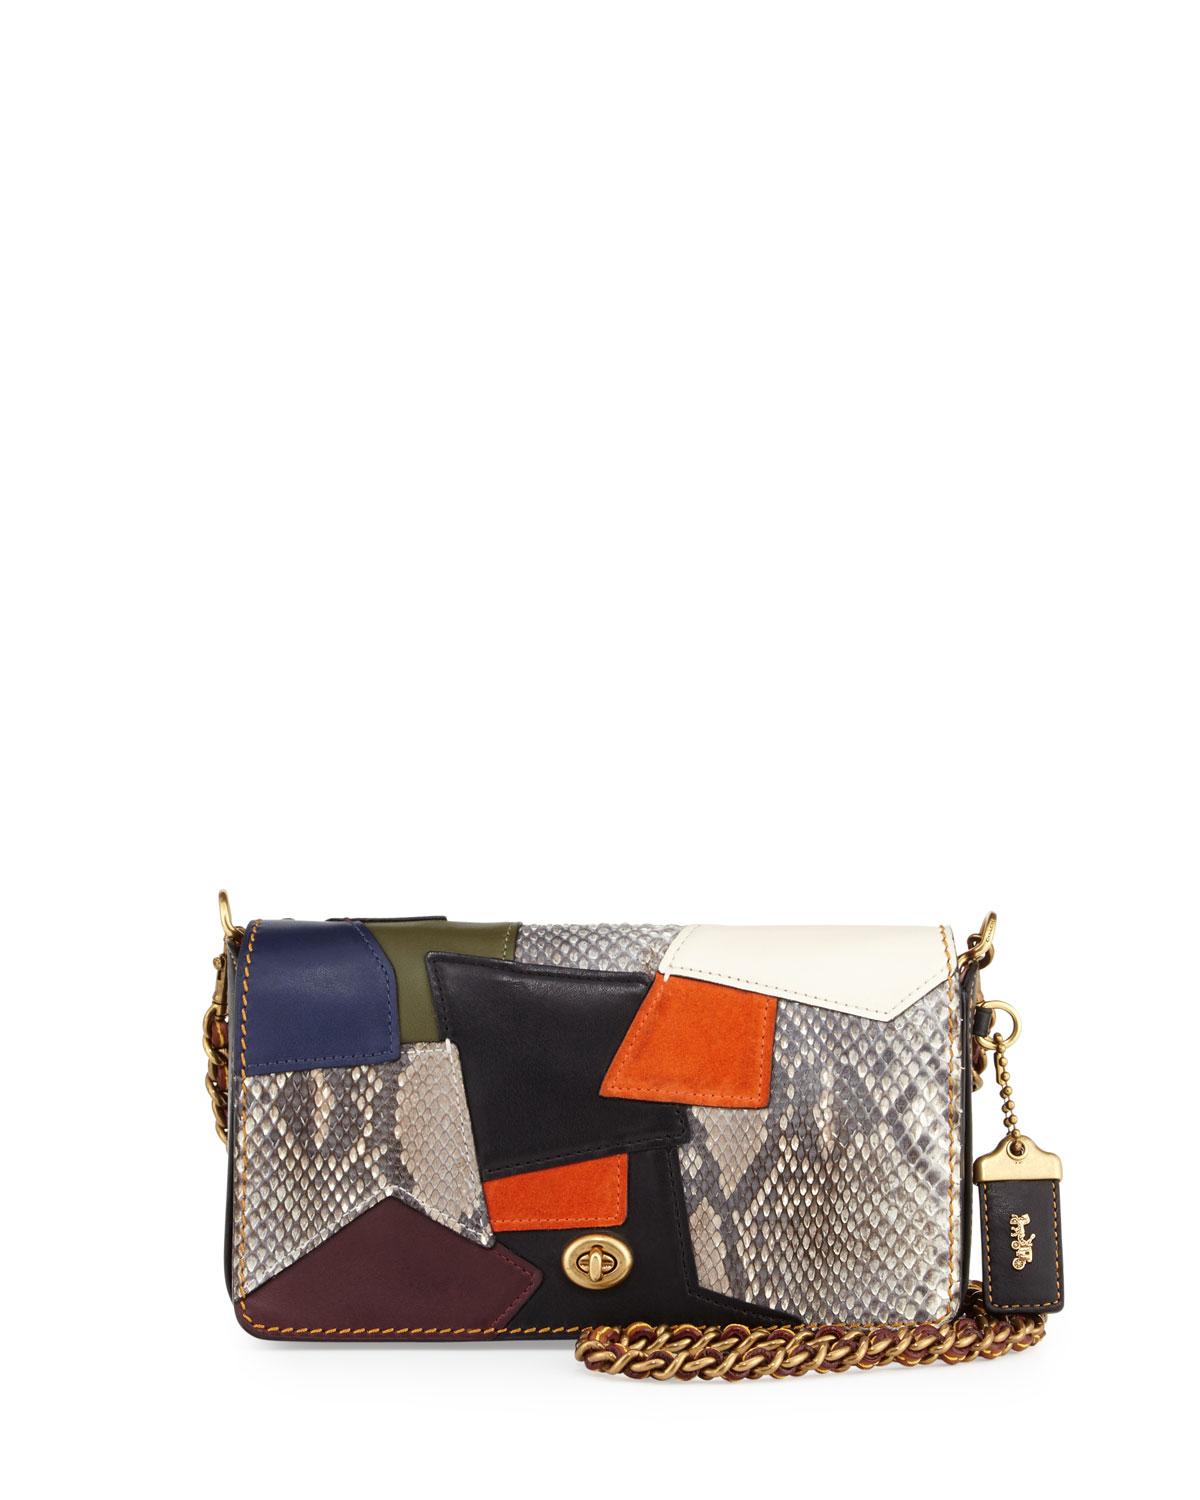 Coach 1941 Dinky Small Patchwork Crossbody Bag f3b1924cc178a